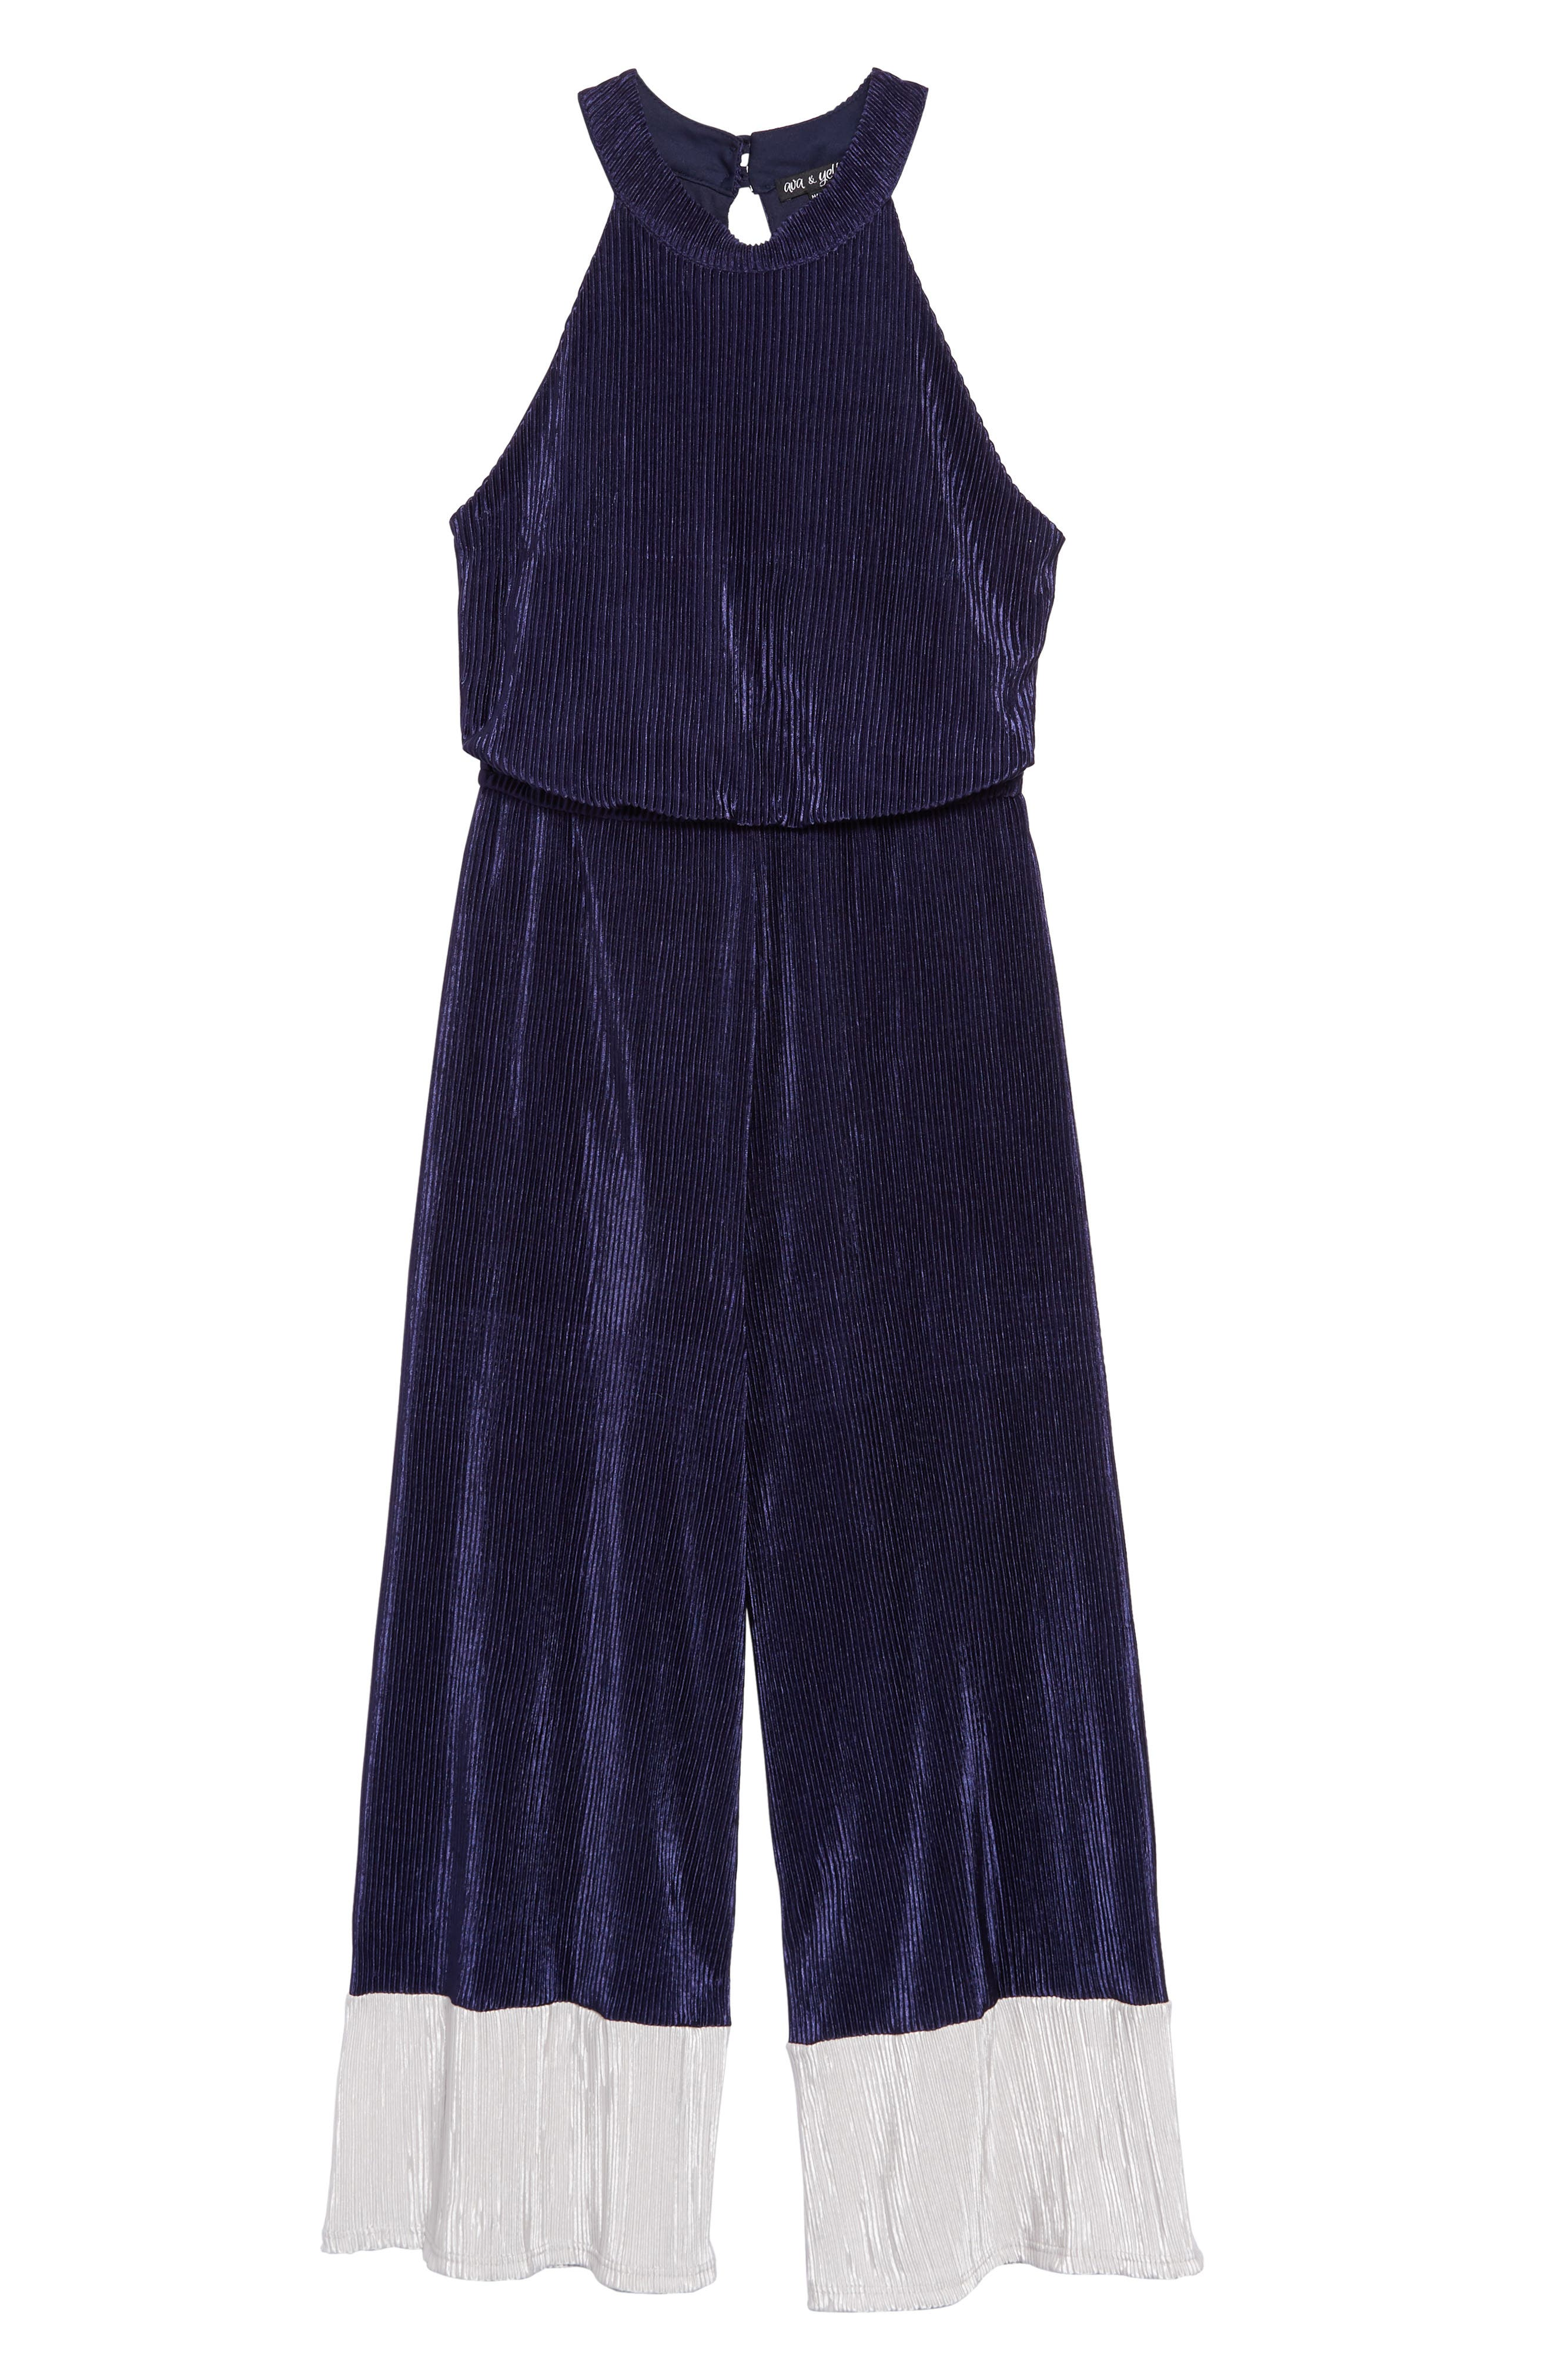 Ava and Yelly Big Girls Tie Dye Jumpsuit